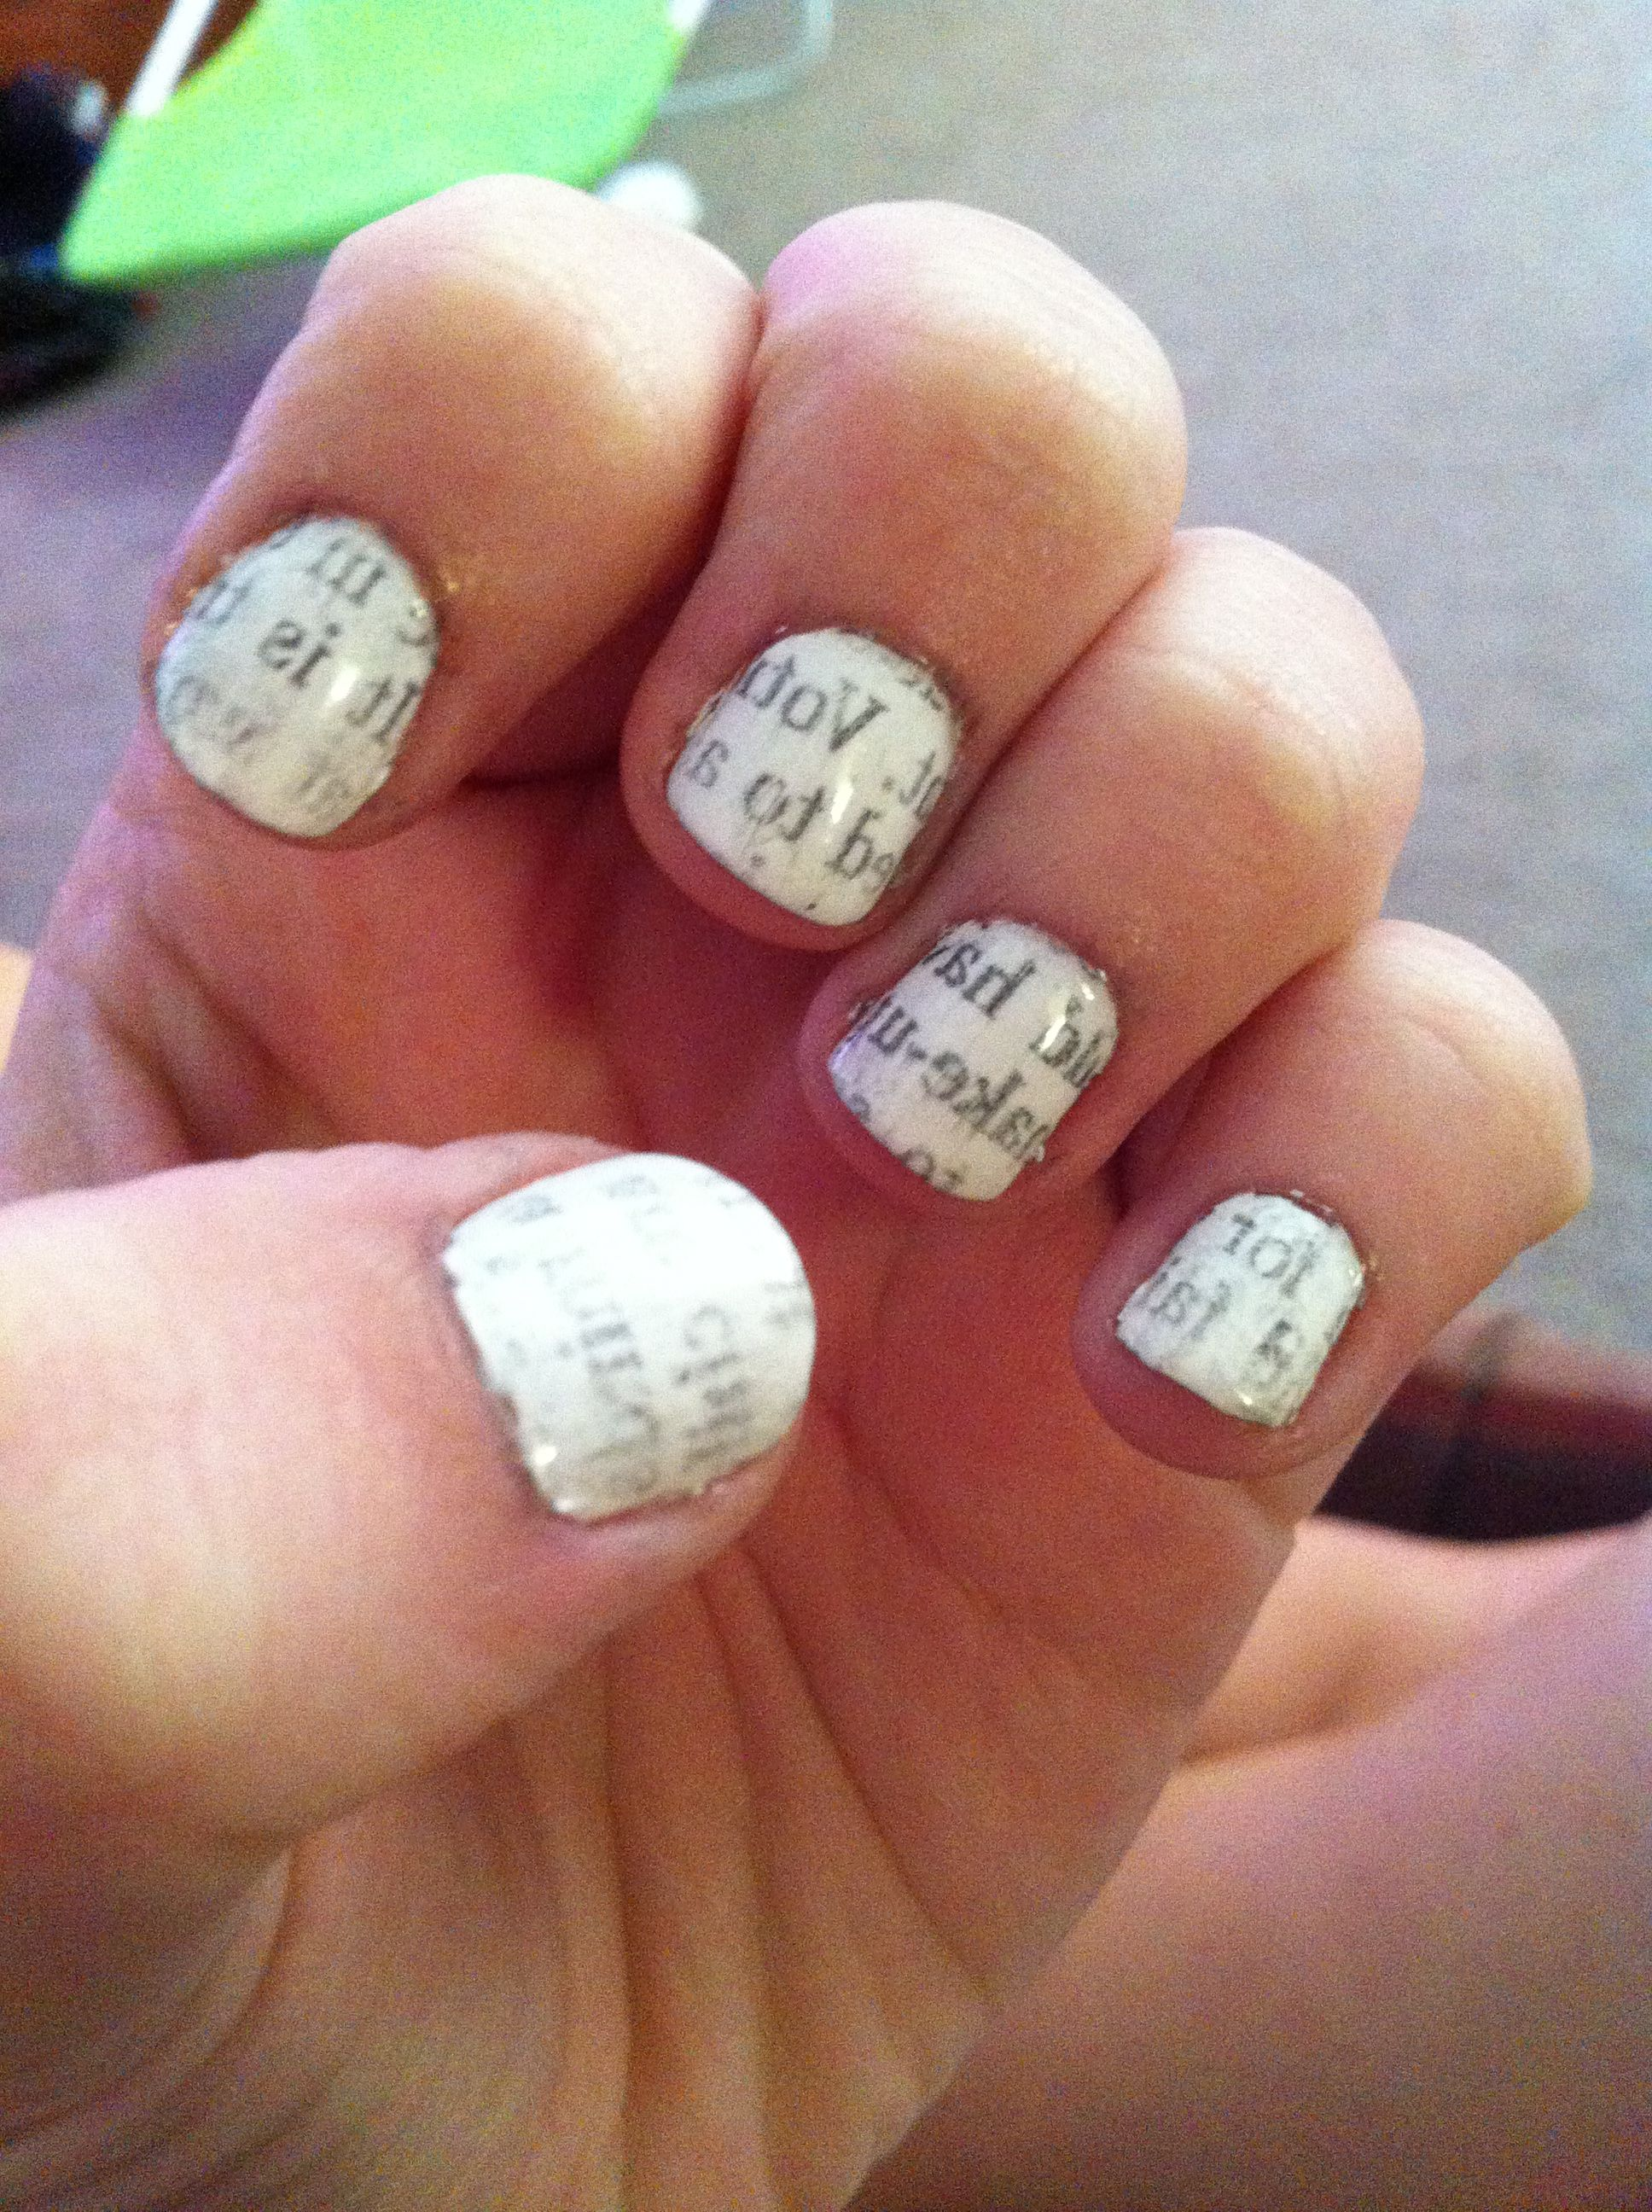 Newspaper Nails :) | Nails | Pinterest | Newspaper nails